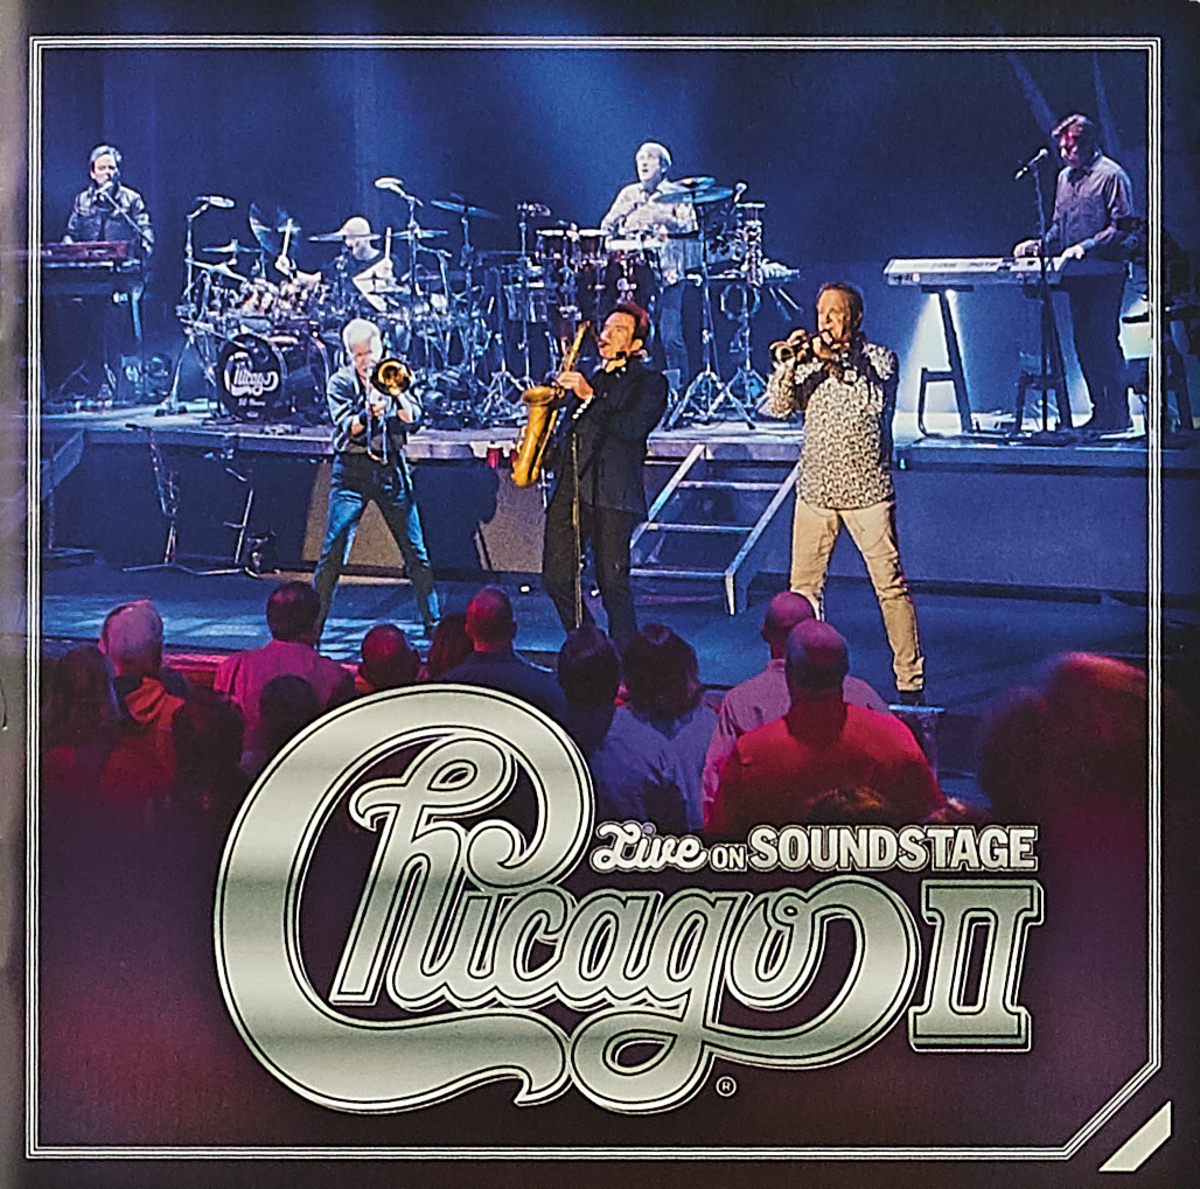 Фото - Chicago Chicago. Chicago II - Live On Soundstage (CD+DVD) cd led zeppelin ii deluxe edition